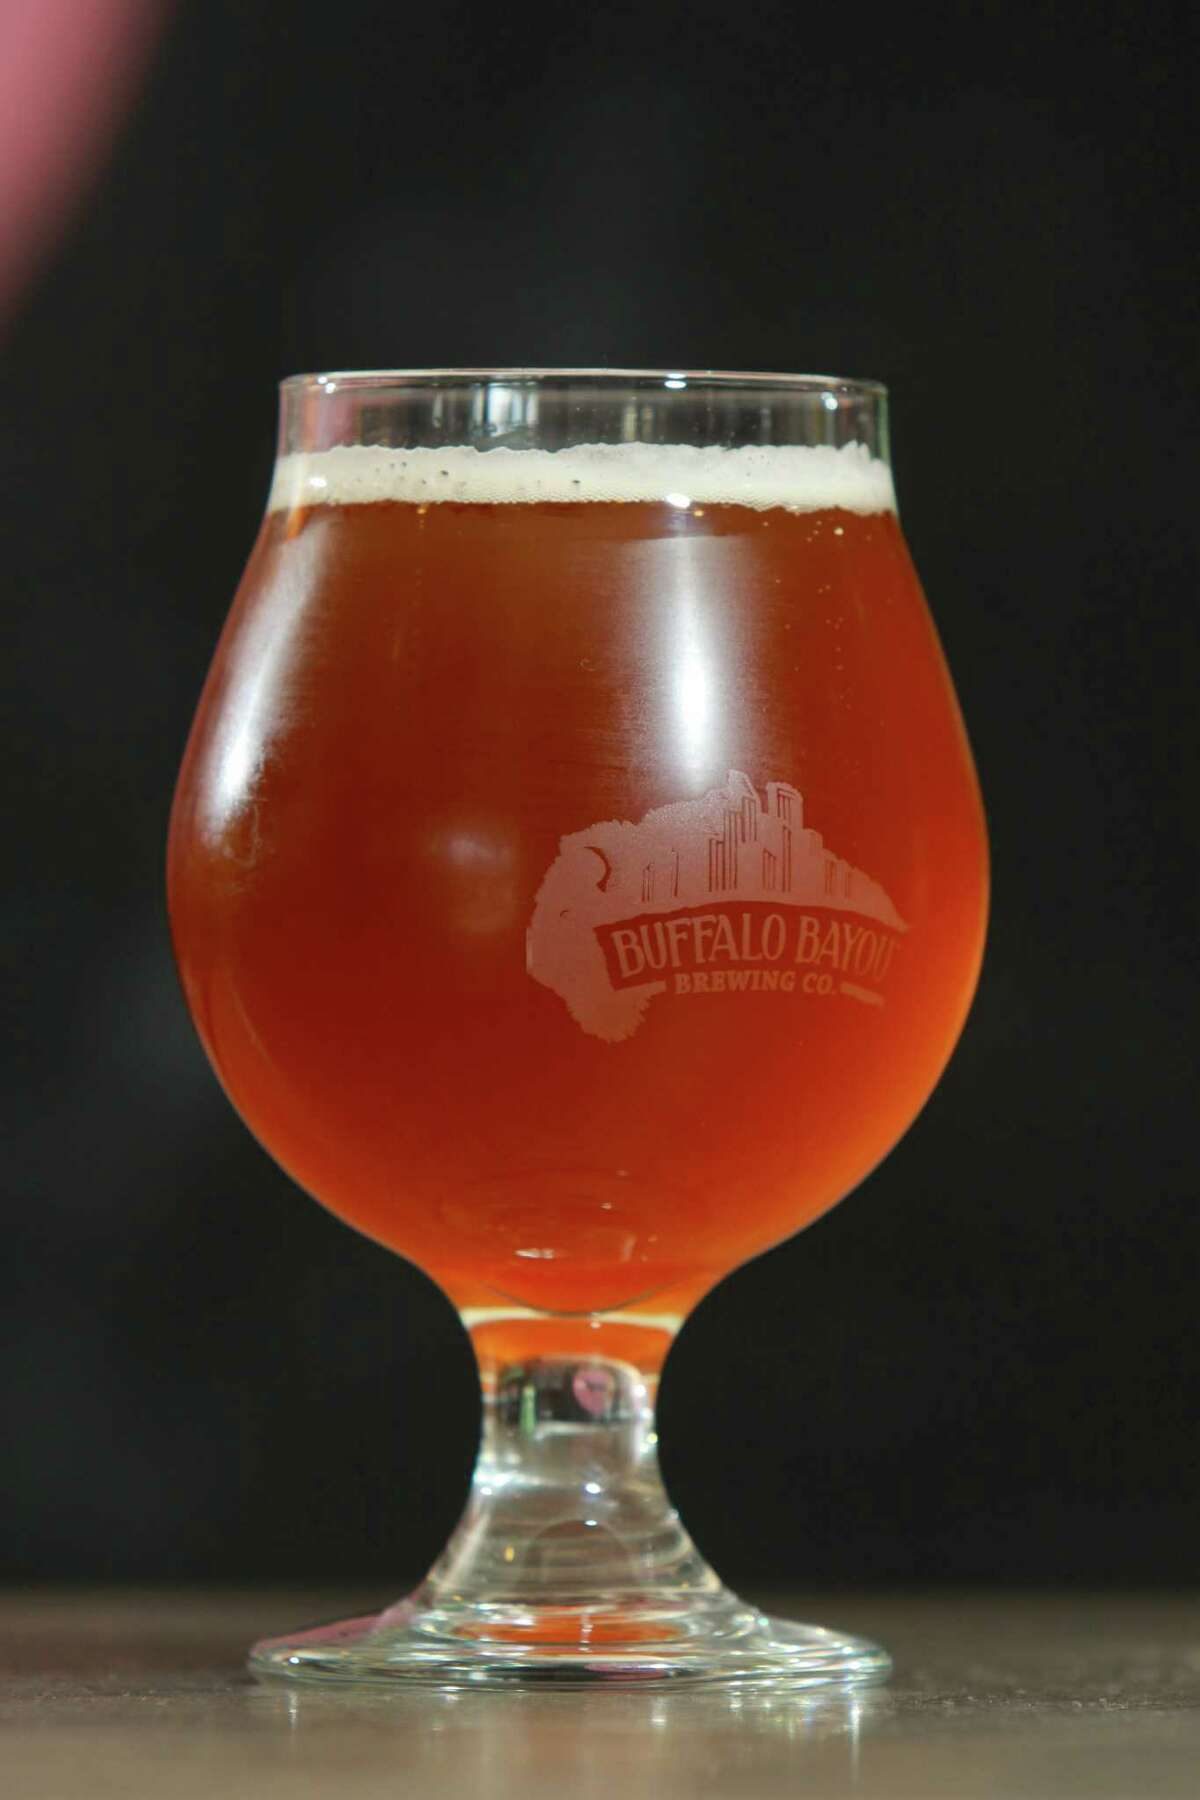 Buffalo Bayou Brewing Co.'s 1836 Copper Ale, on tap at Good Dog restaurant.